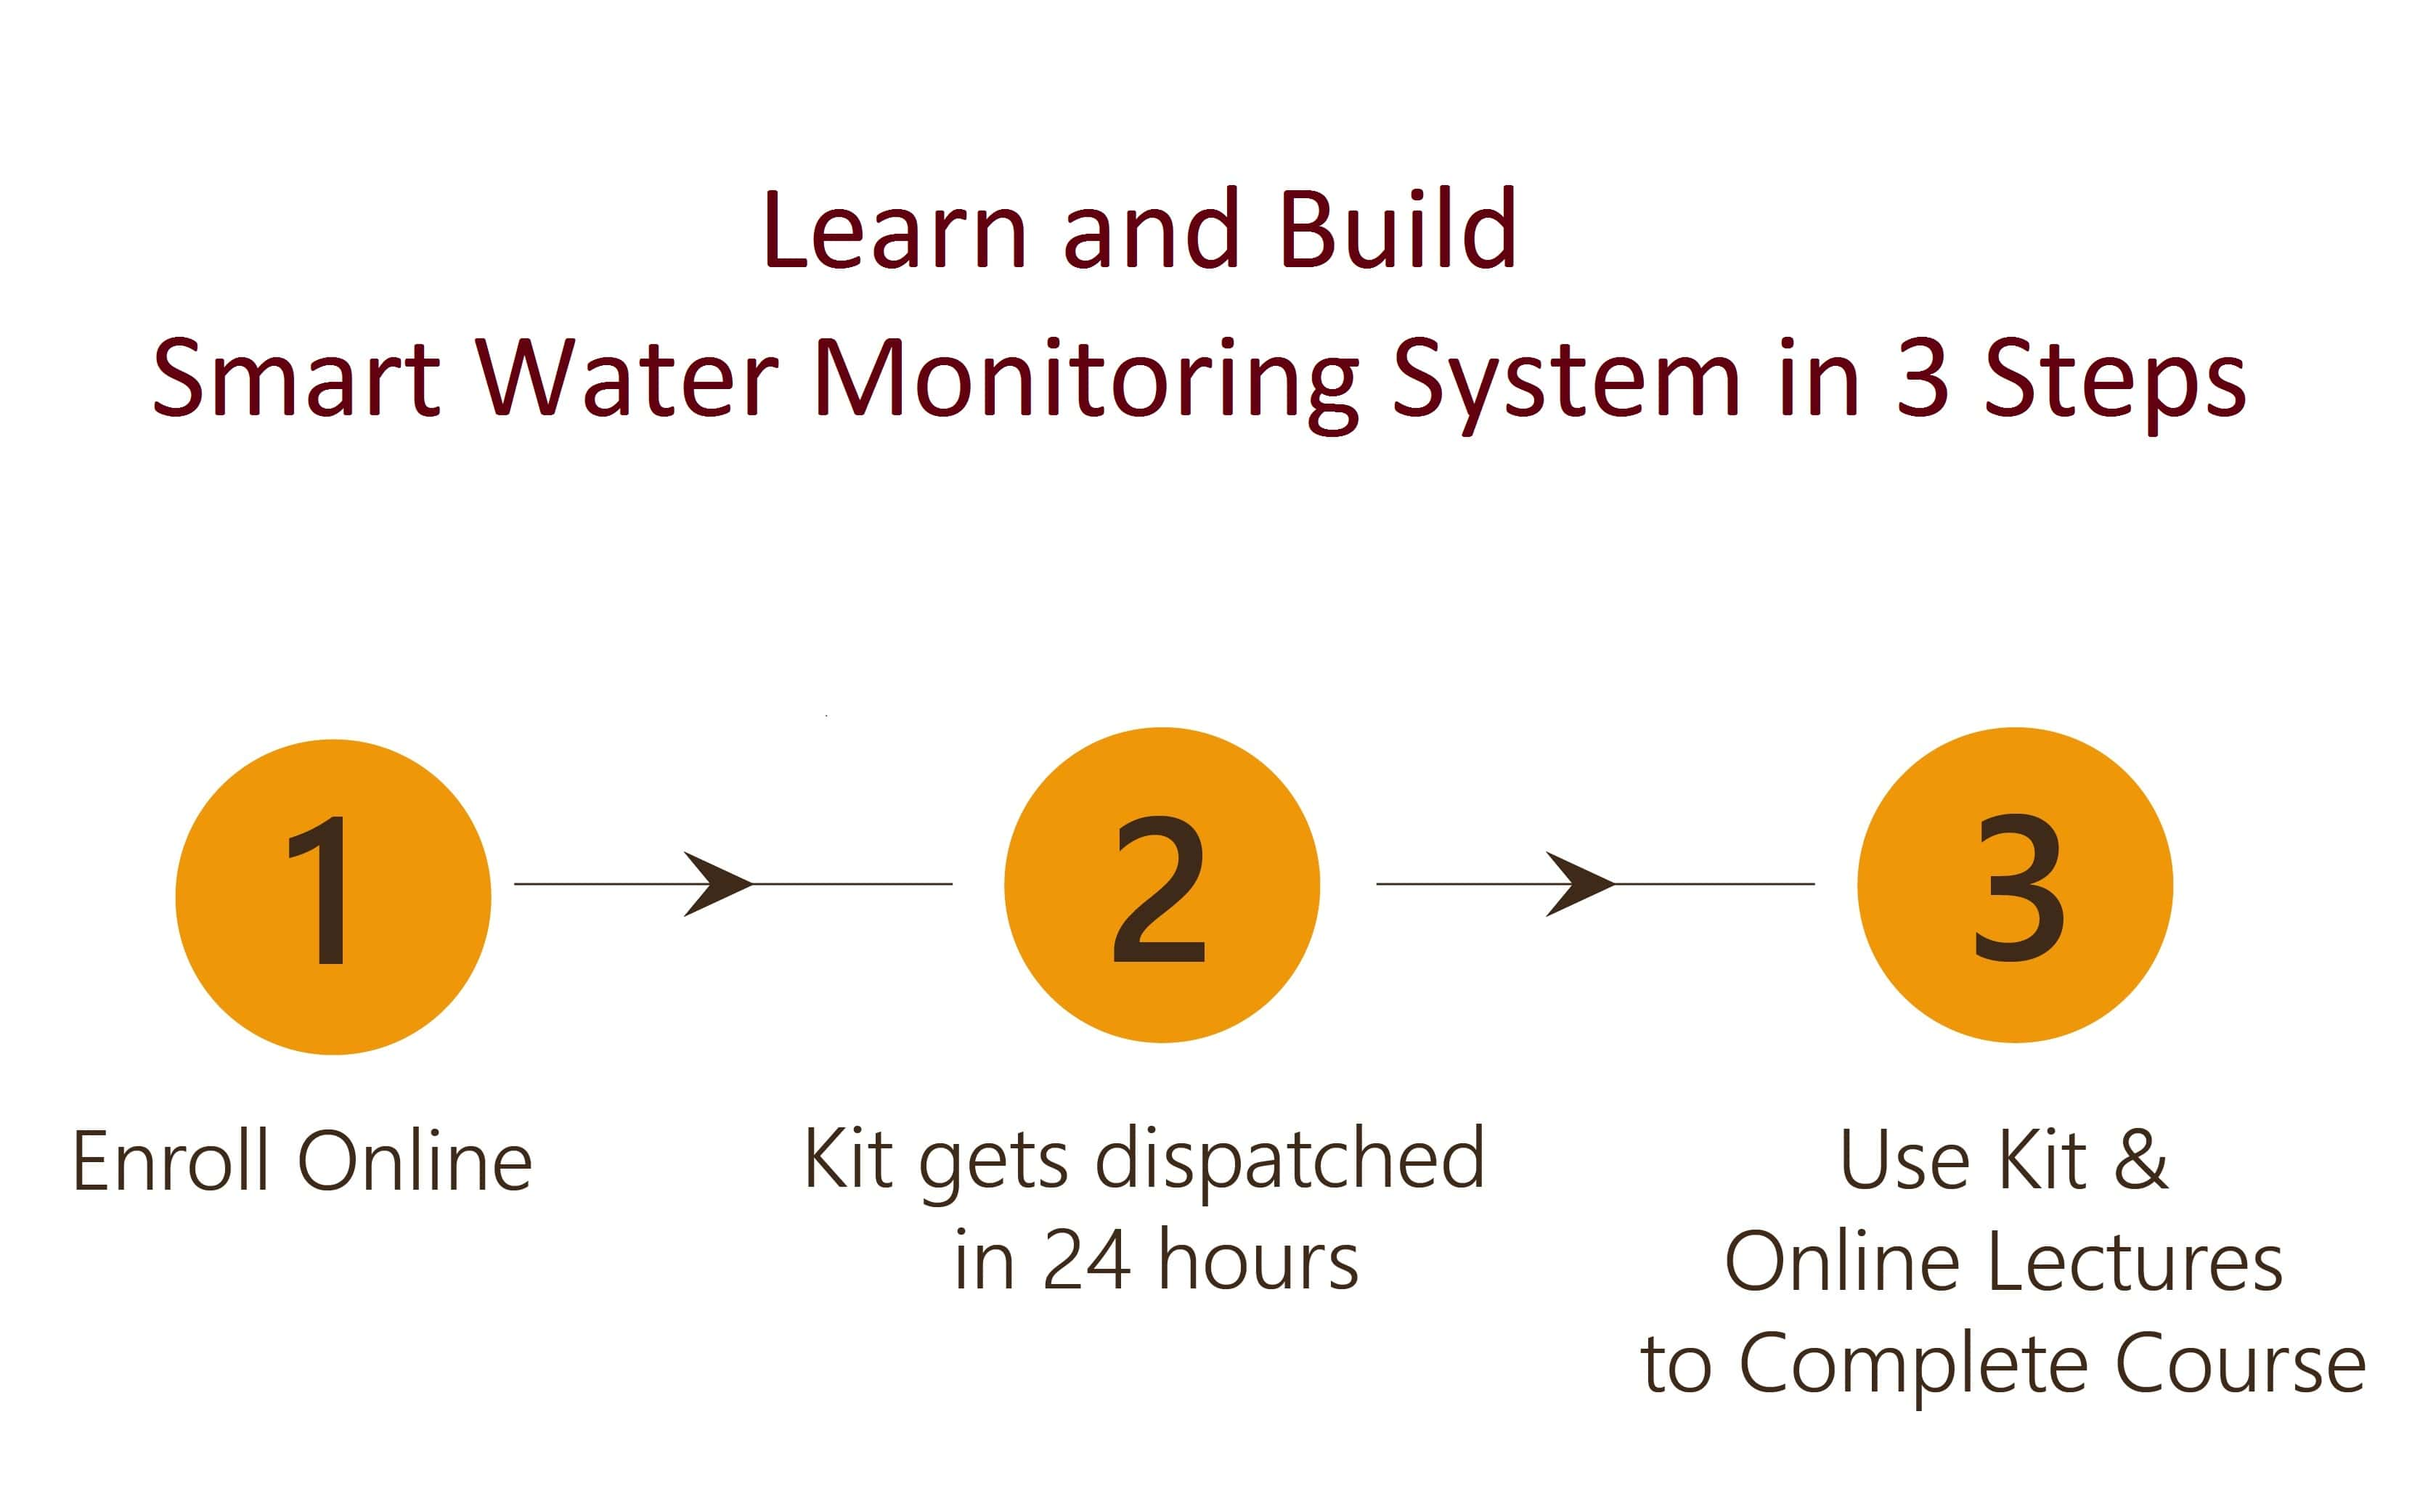 Design and Build Smart Water Monitoring System using IoT Project in 3 Steps